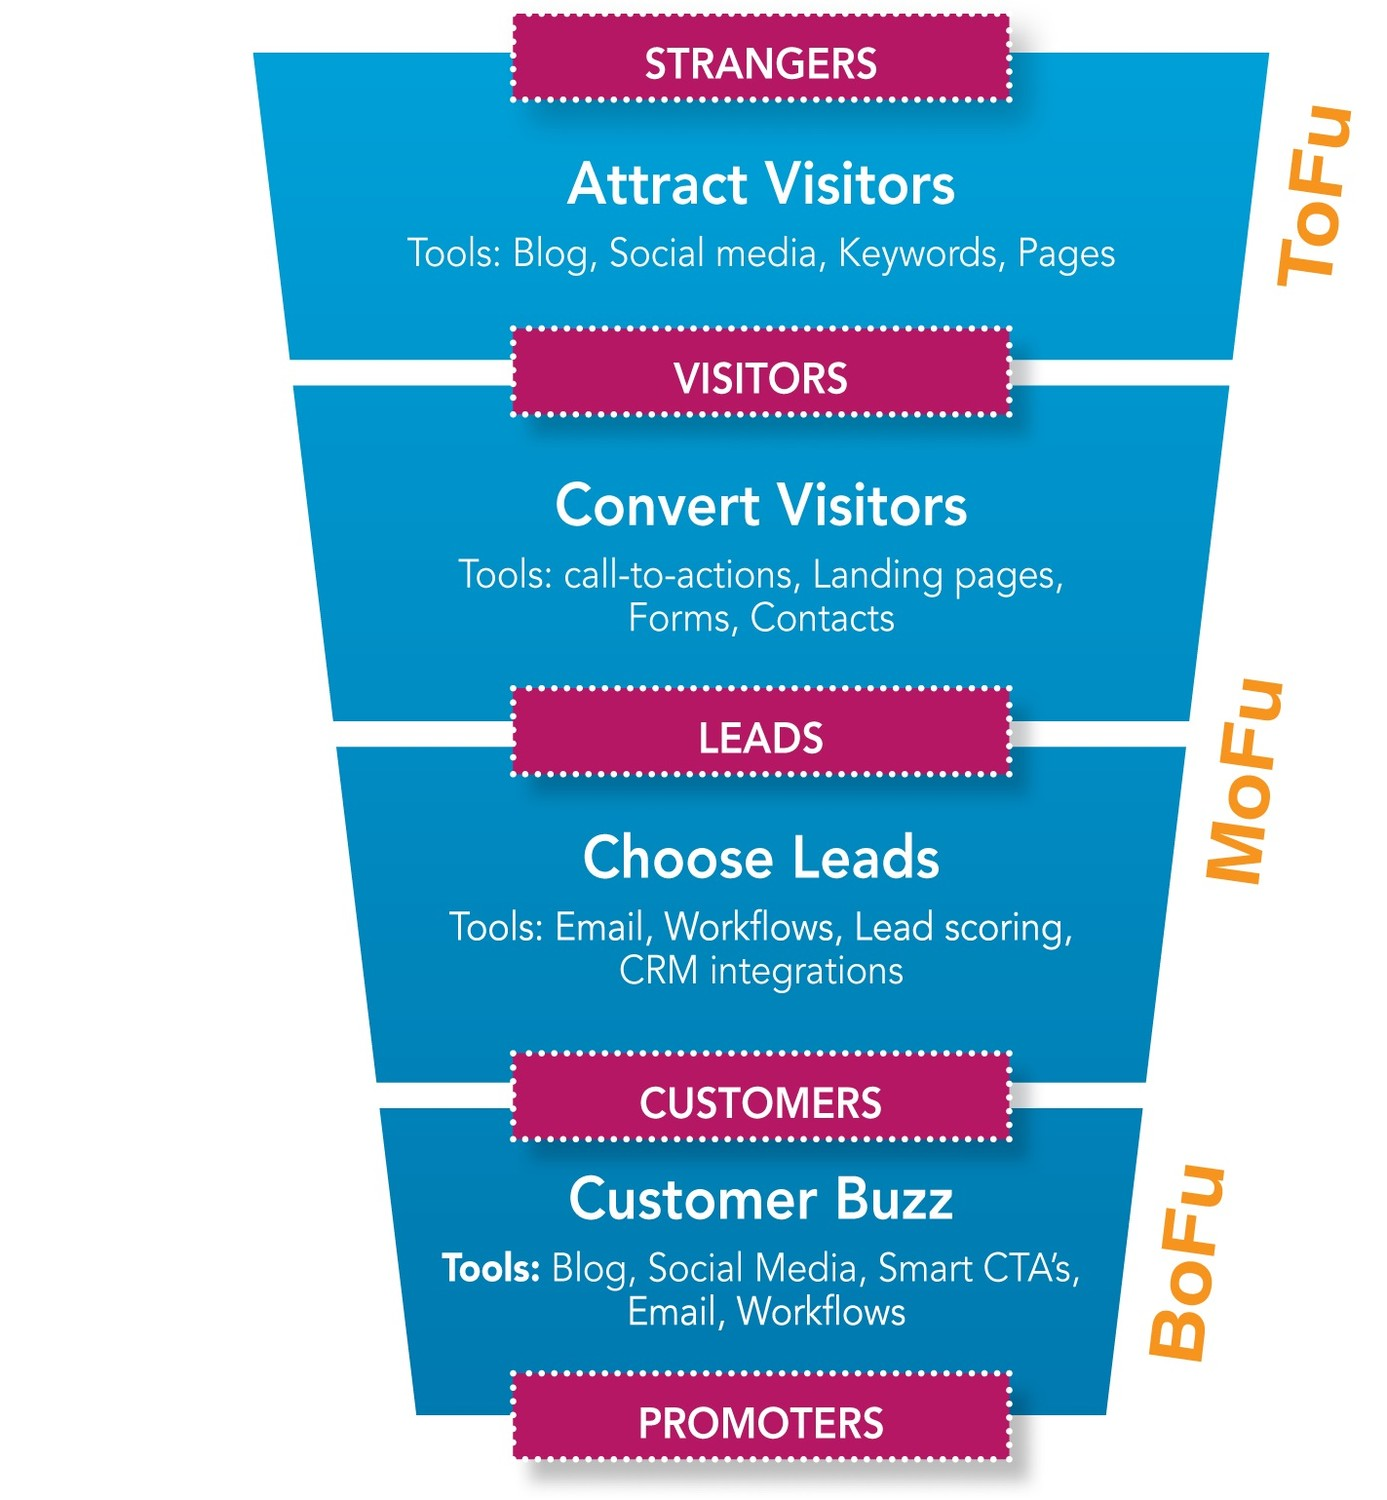 For successful content marketing, you need to build your inbound marketing funnel.